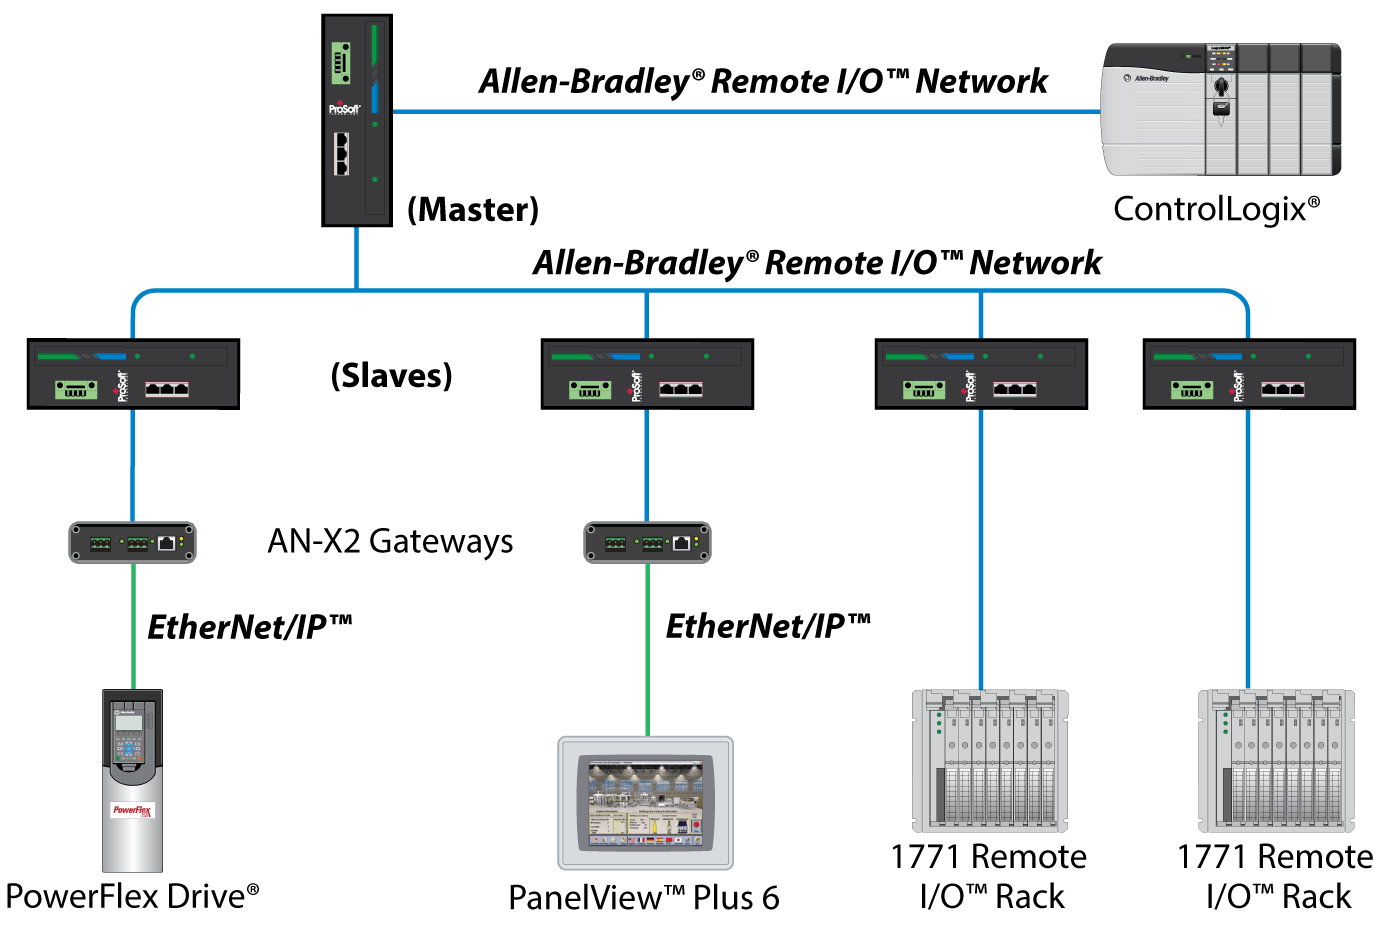 hight resolution of during your next scheduled downtime the plc 5 rack can be upgraded to the new controllogix rack now the controllogix rack is running your remote i o